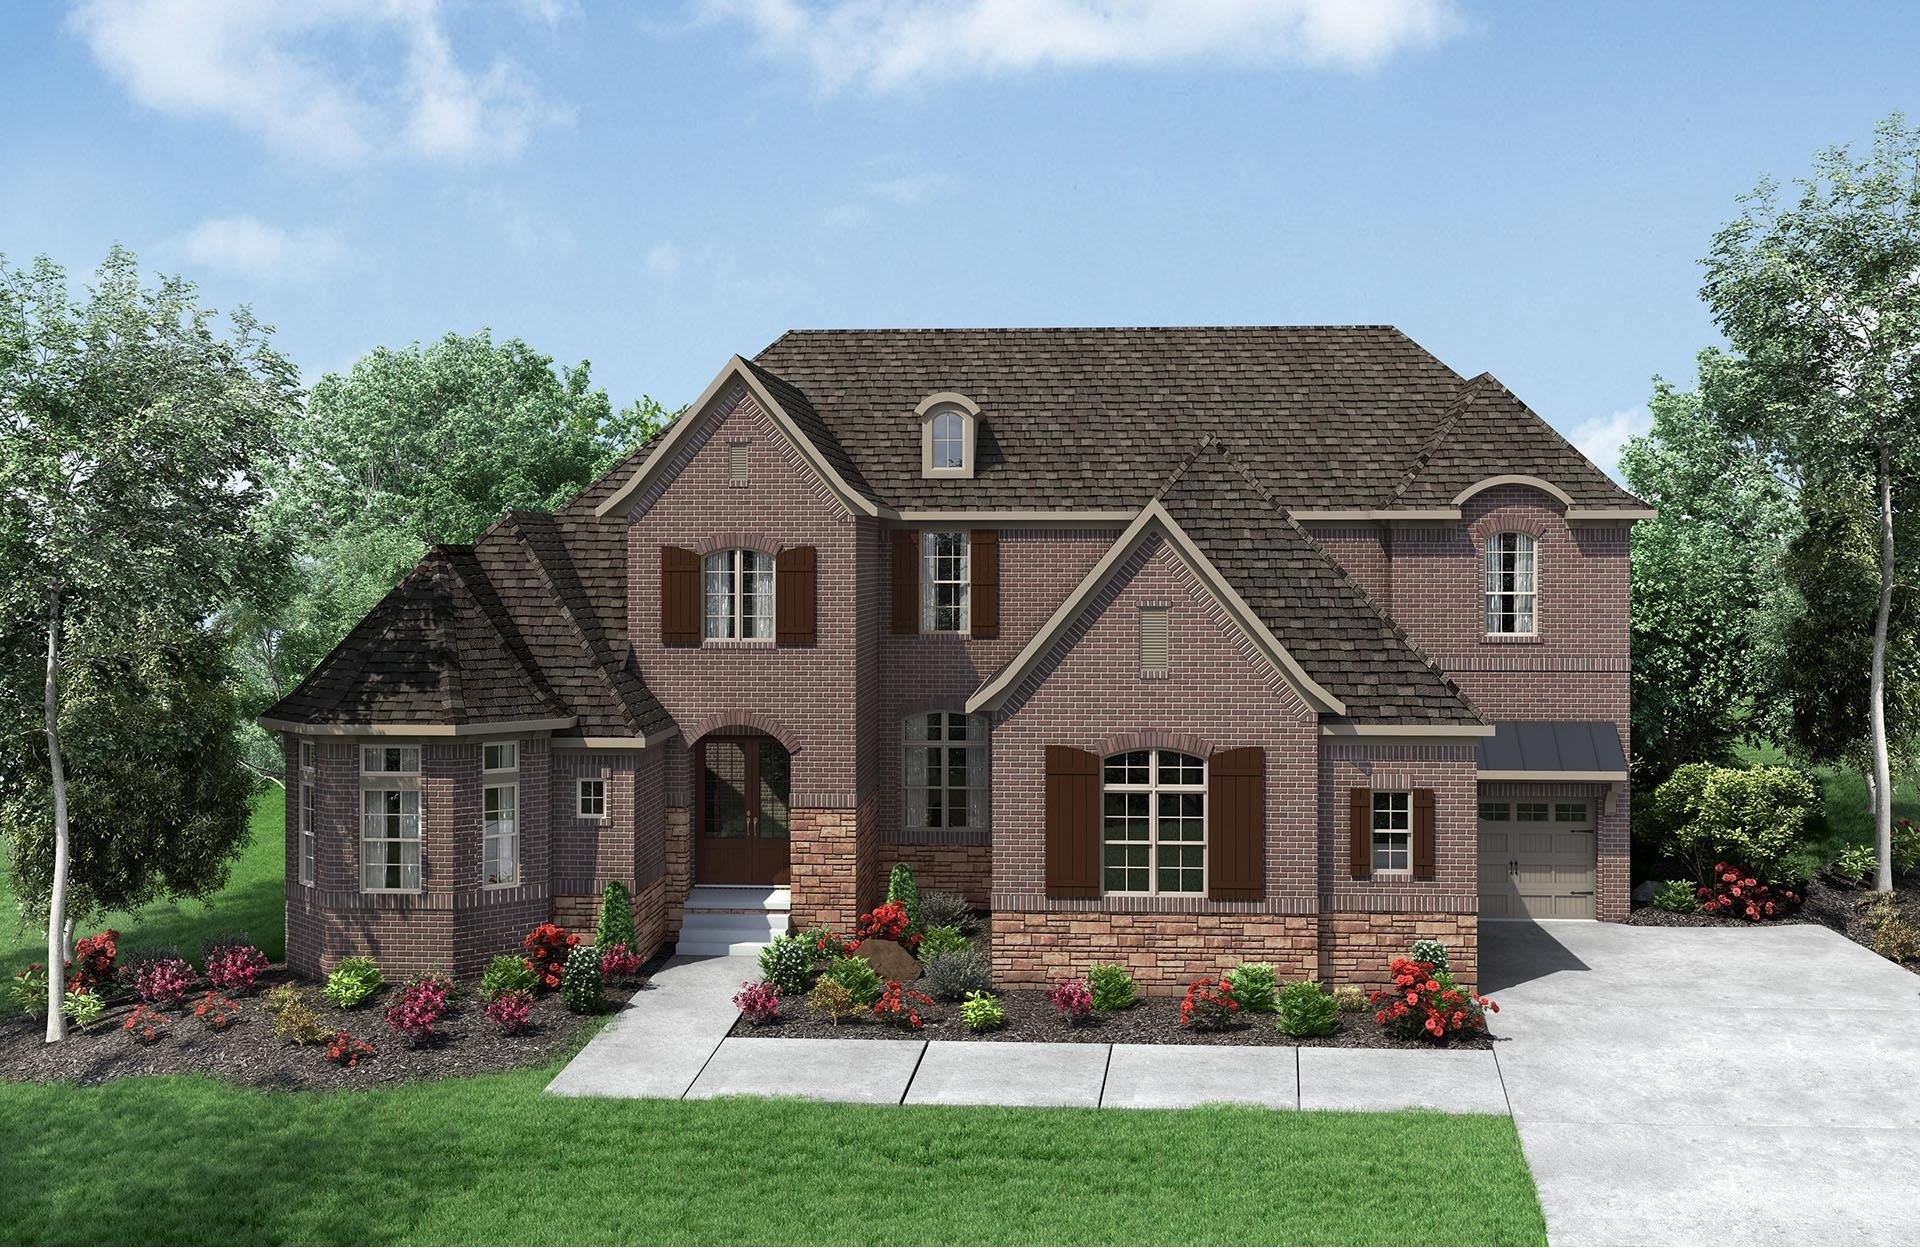 1916 Parade Drive #24, Brentwood, TN 37027 - MLS#: 2298182